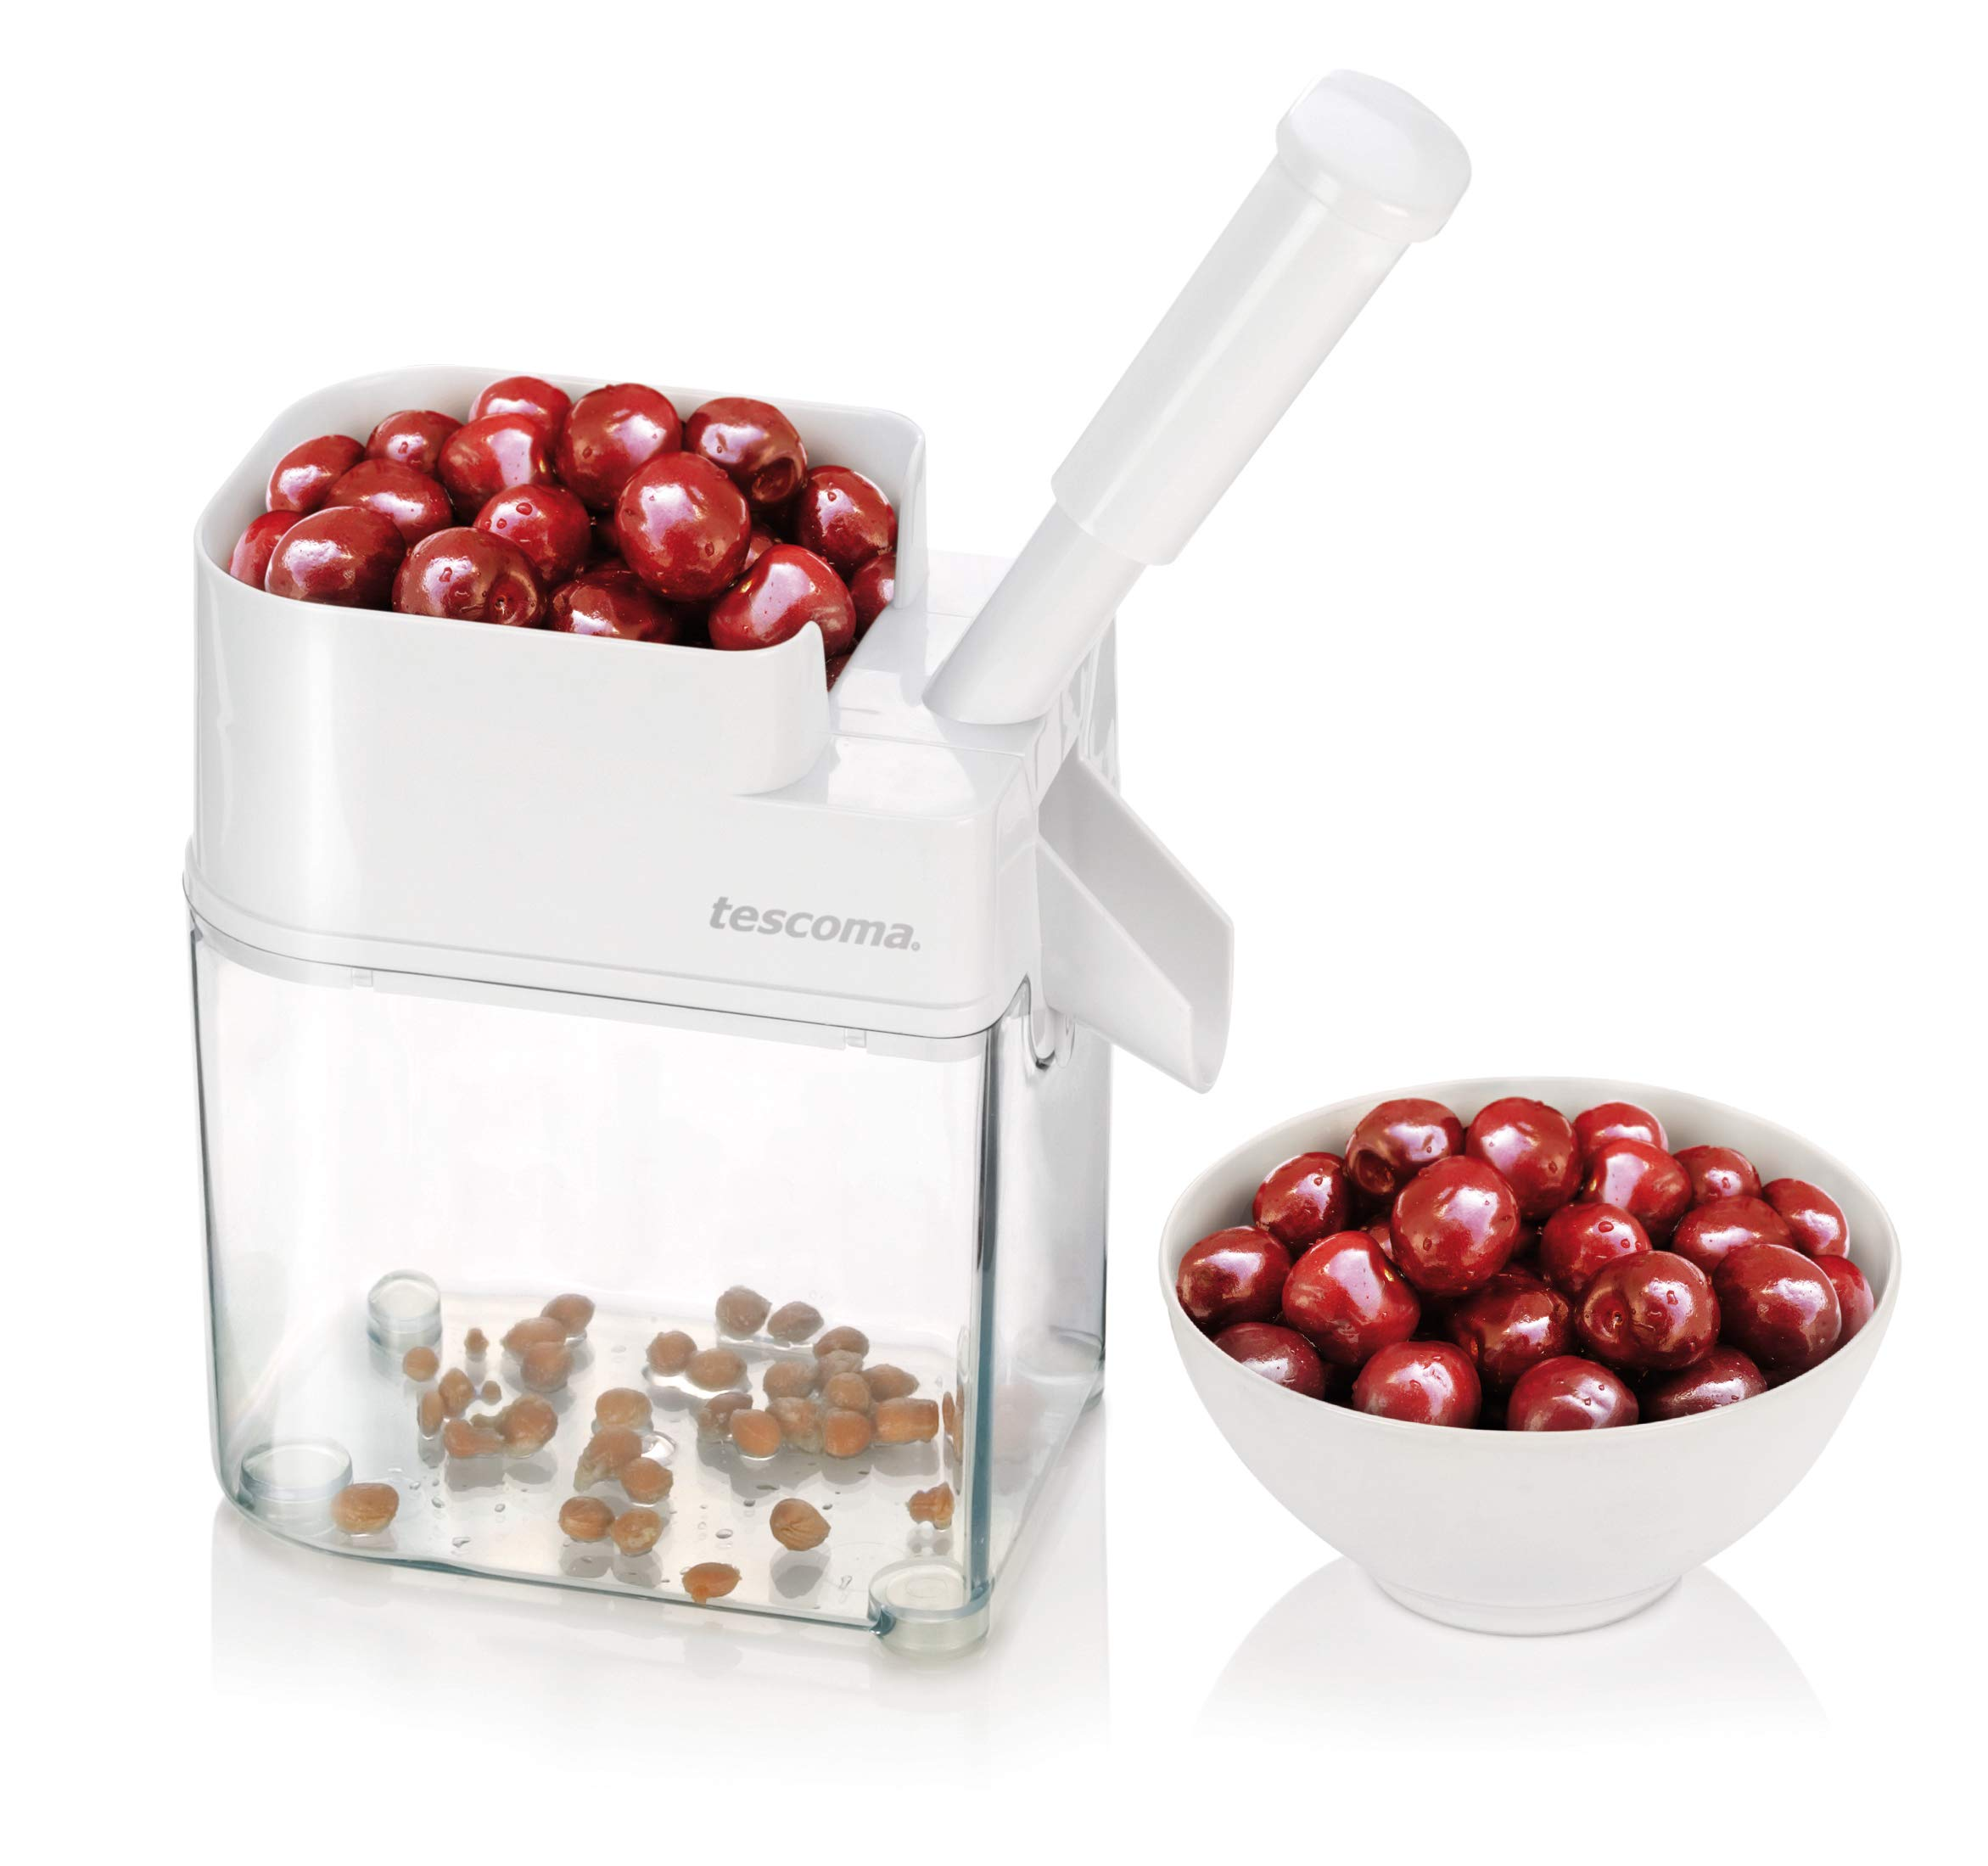 Tescoma Cherry Stoner Handy by by Tescoma